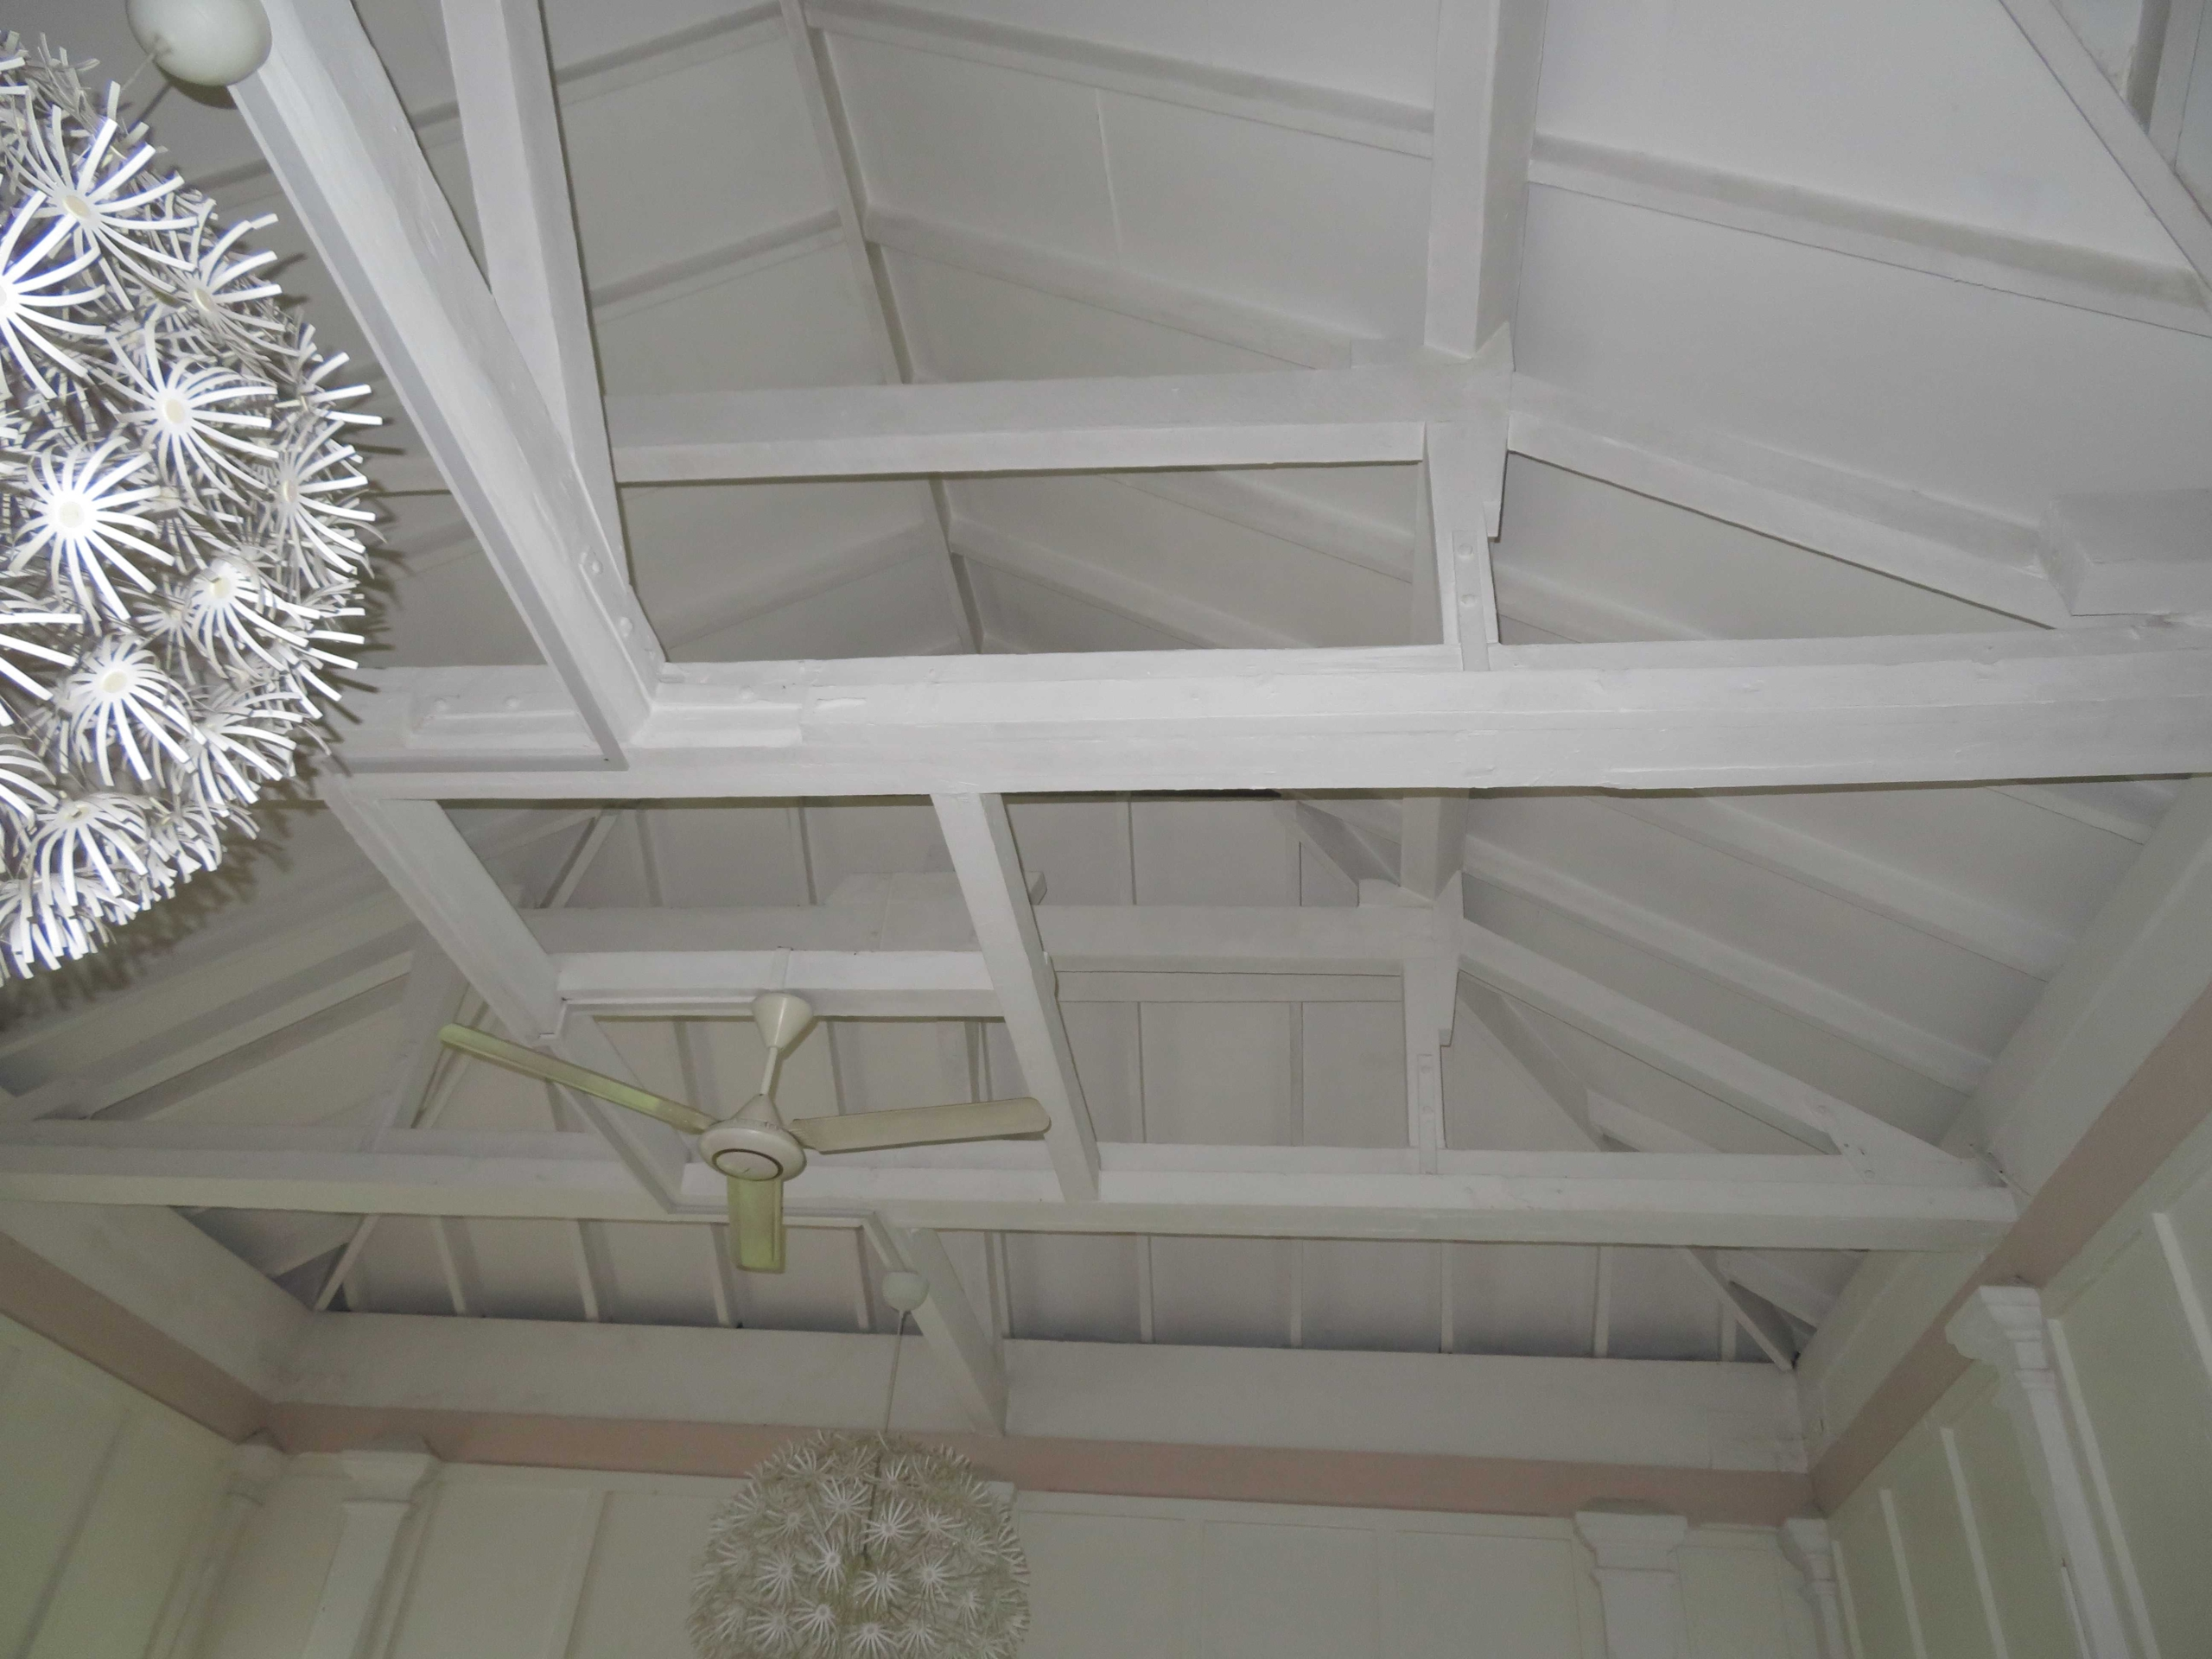 Exposed timber roofing structure